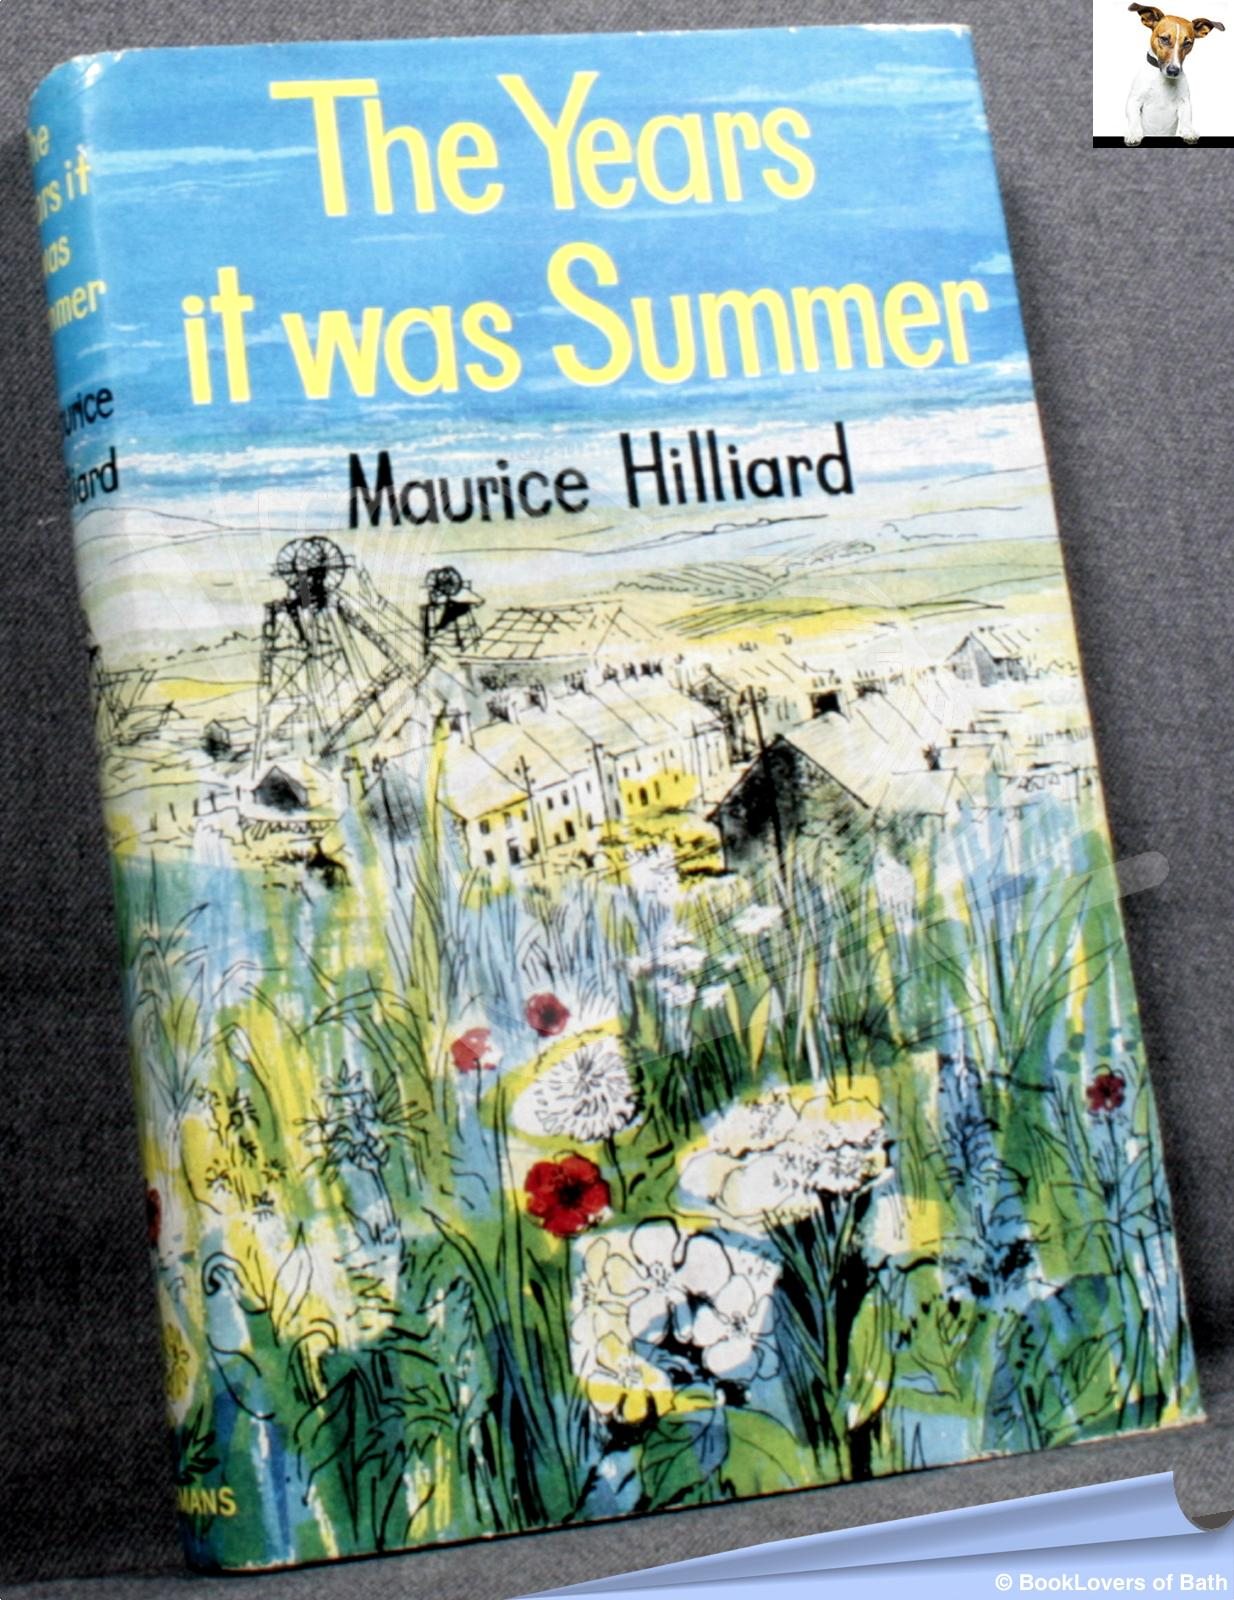 The Years it was Summer - Maurice Hilliard